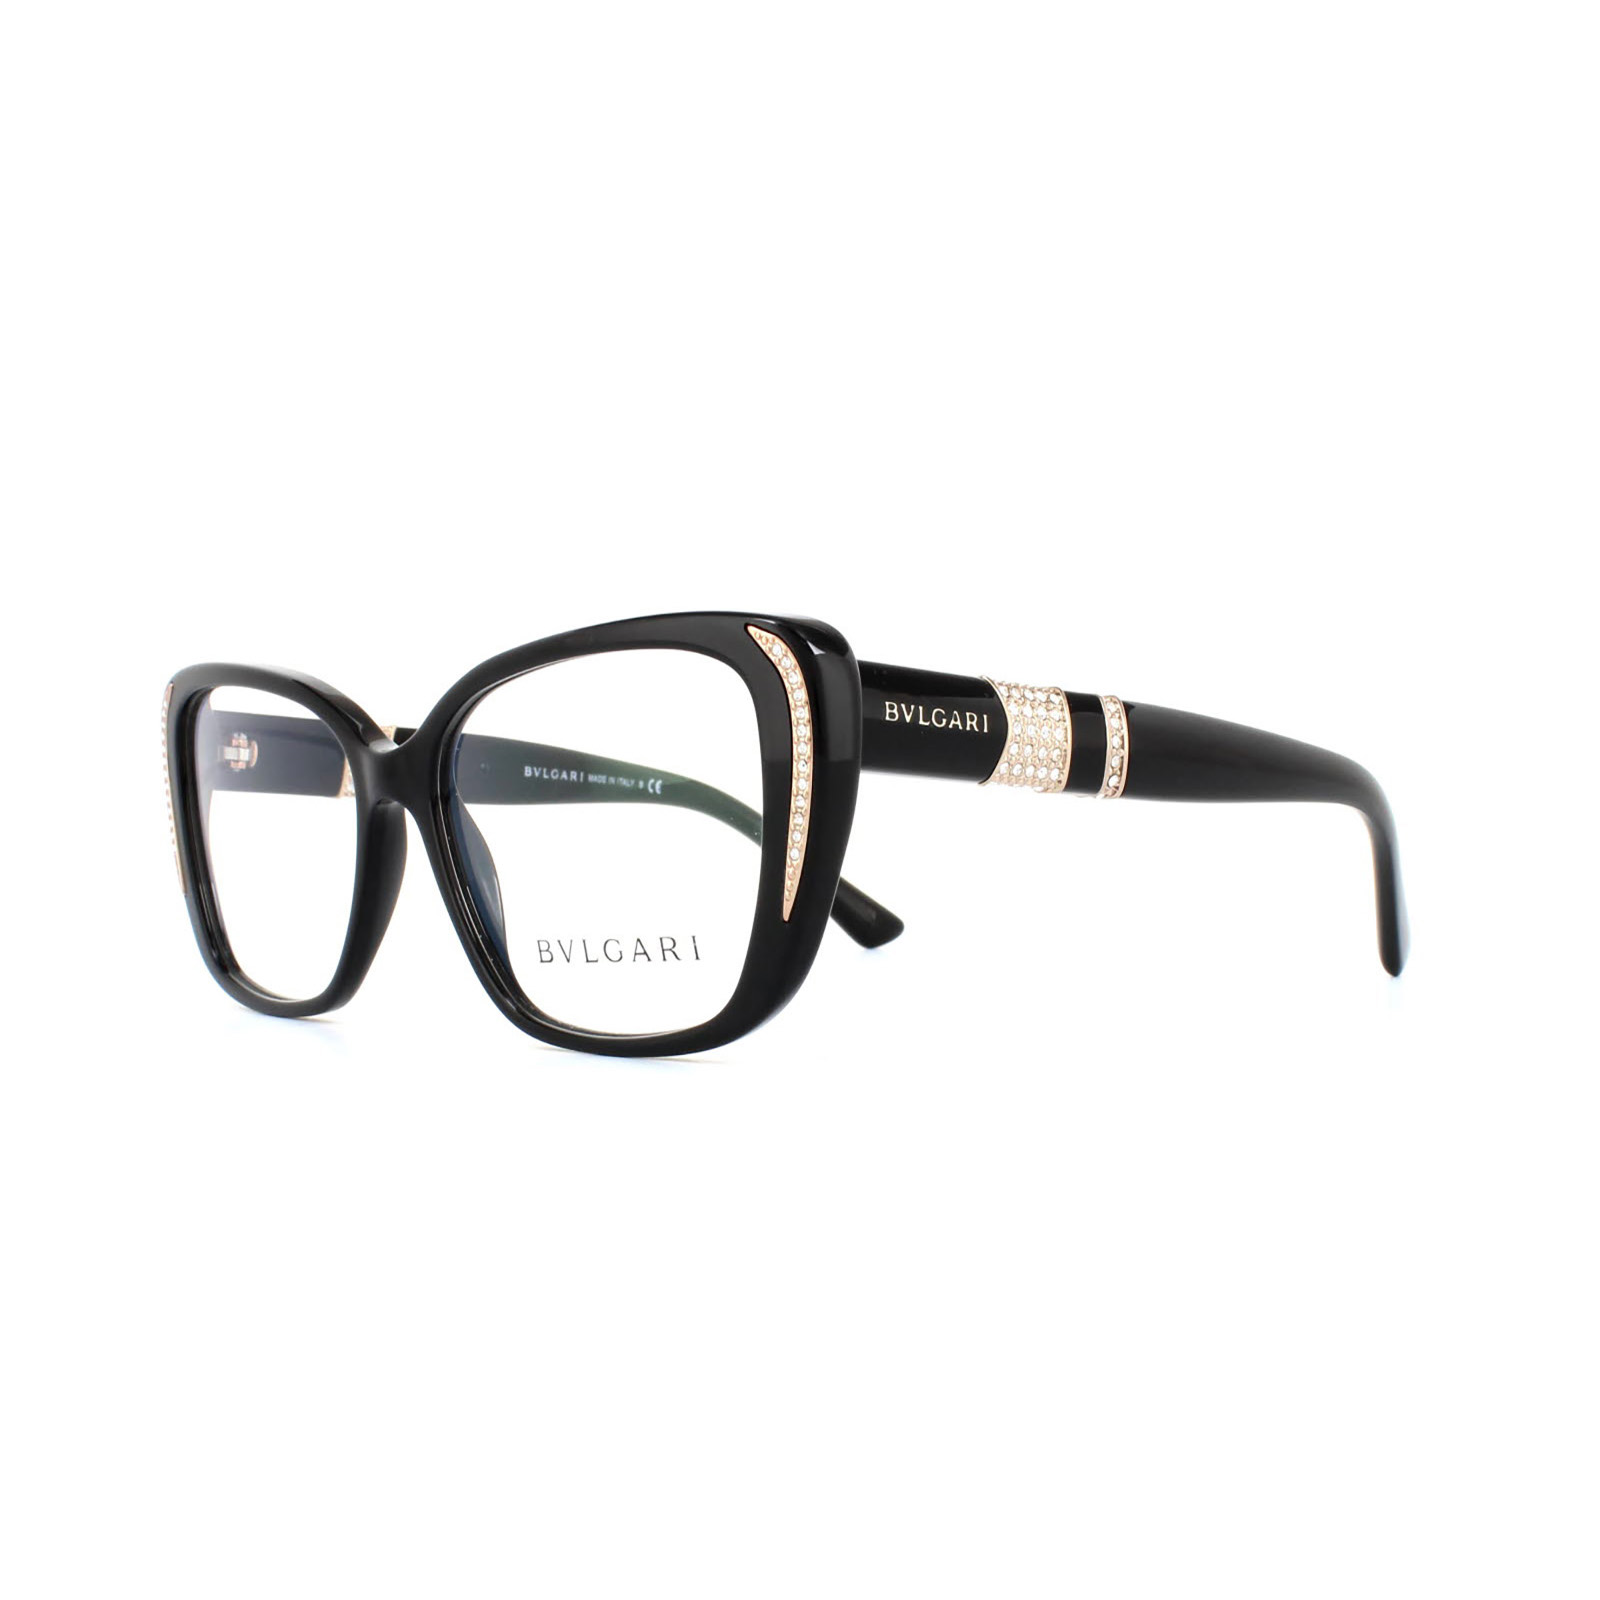 880002c633efe Bvlgari Glasses Frames 4102BM 501 Black Womens 53mm 8053672328943